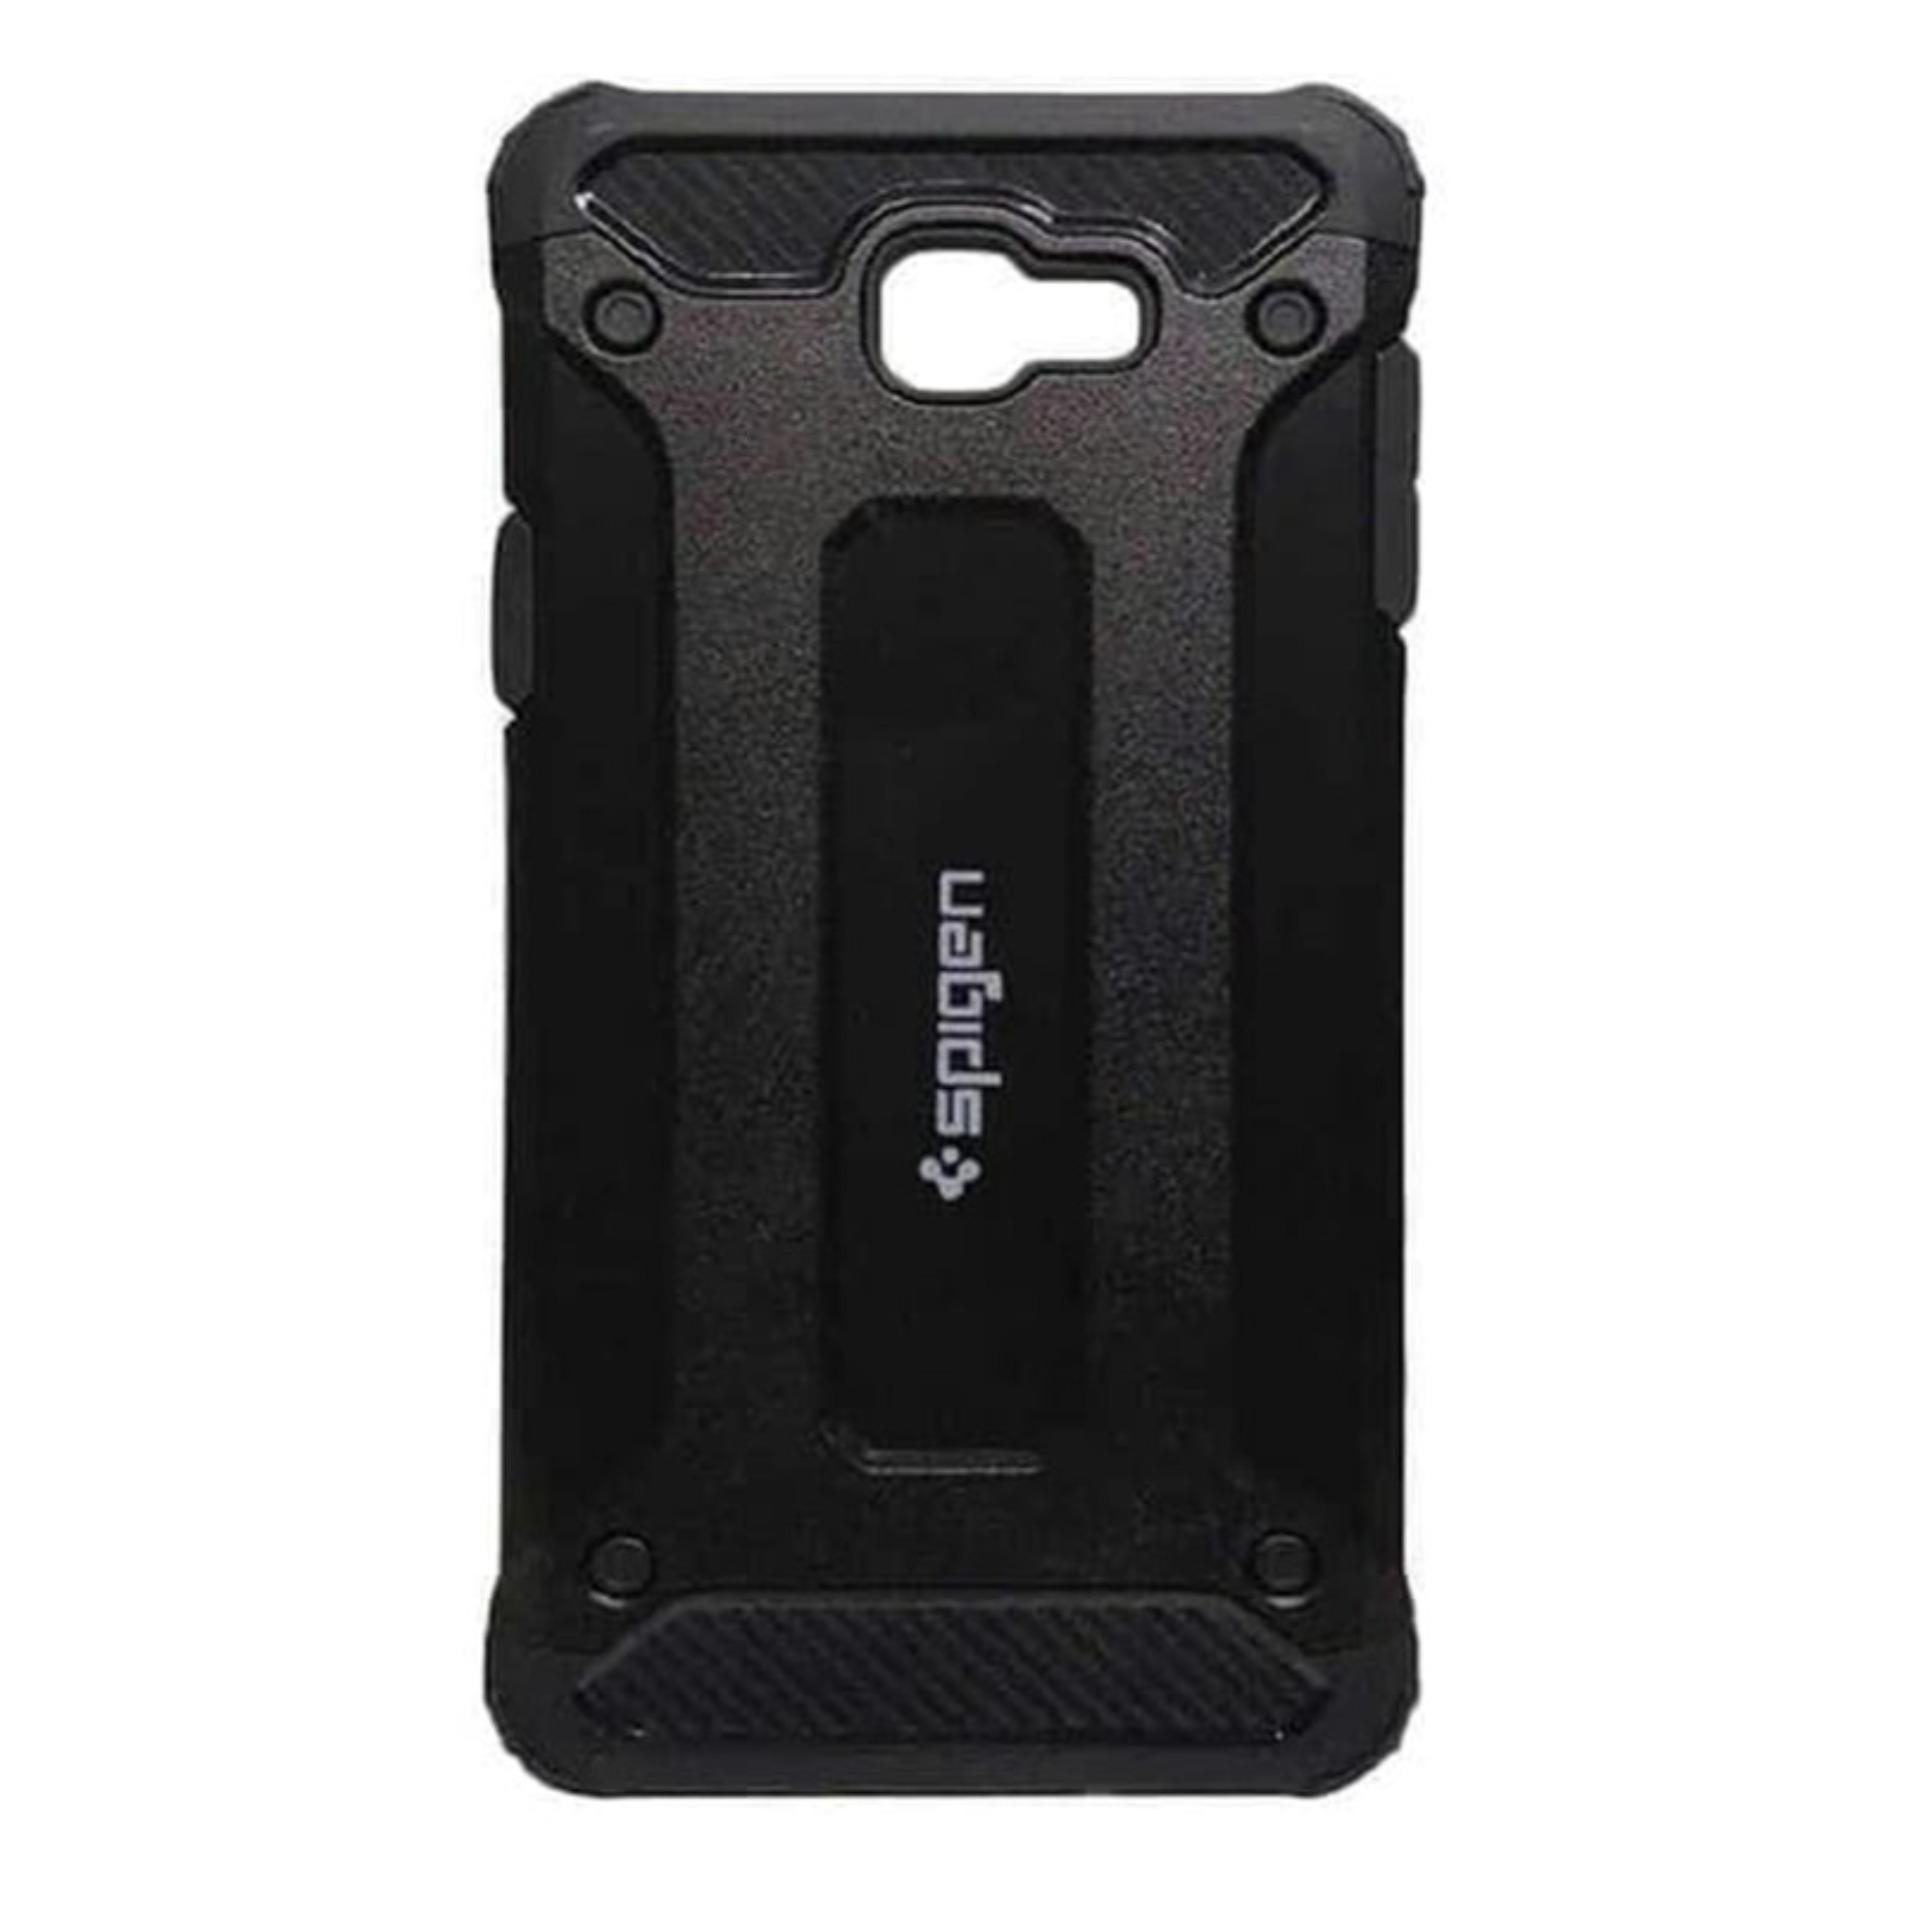 Features Case Hard Cover Robot Shockproof Armor For Samsung Galaxy